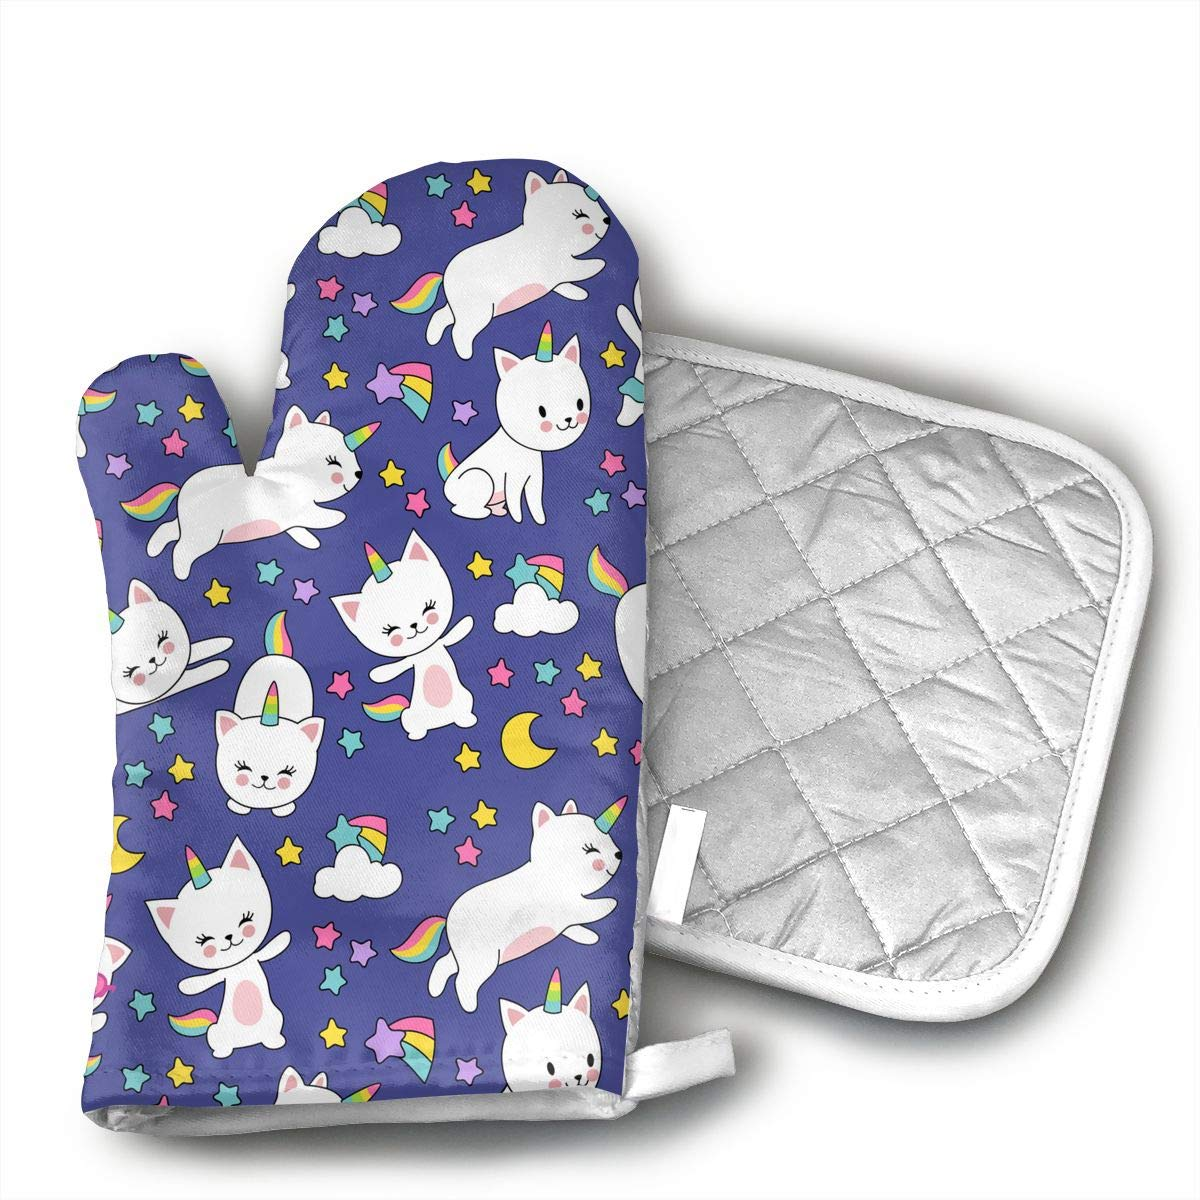 W3Zap6 Cute Cats Unicorn Seamless Pattern for Kids Oven Mitts BBQ Oven Gloves Baking Pot Mitts for Kitchen Cooking